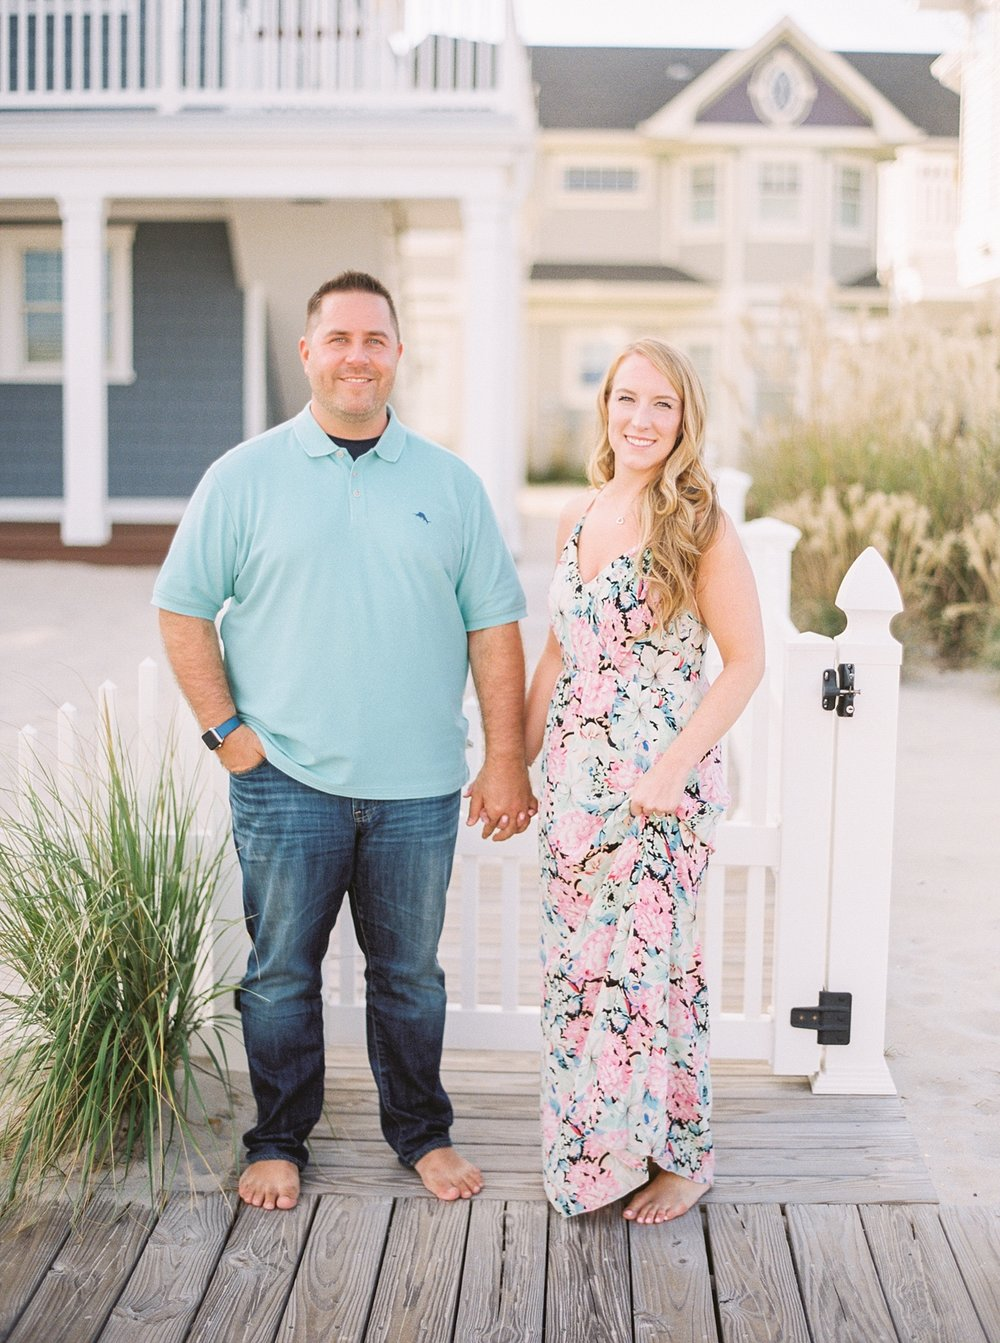 lavalette_nj_engagement_photography_0001.jpg